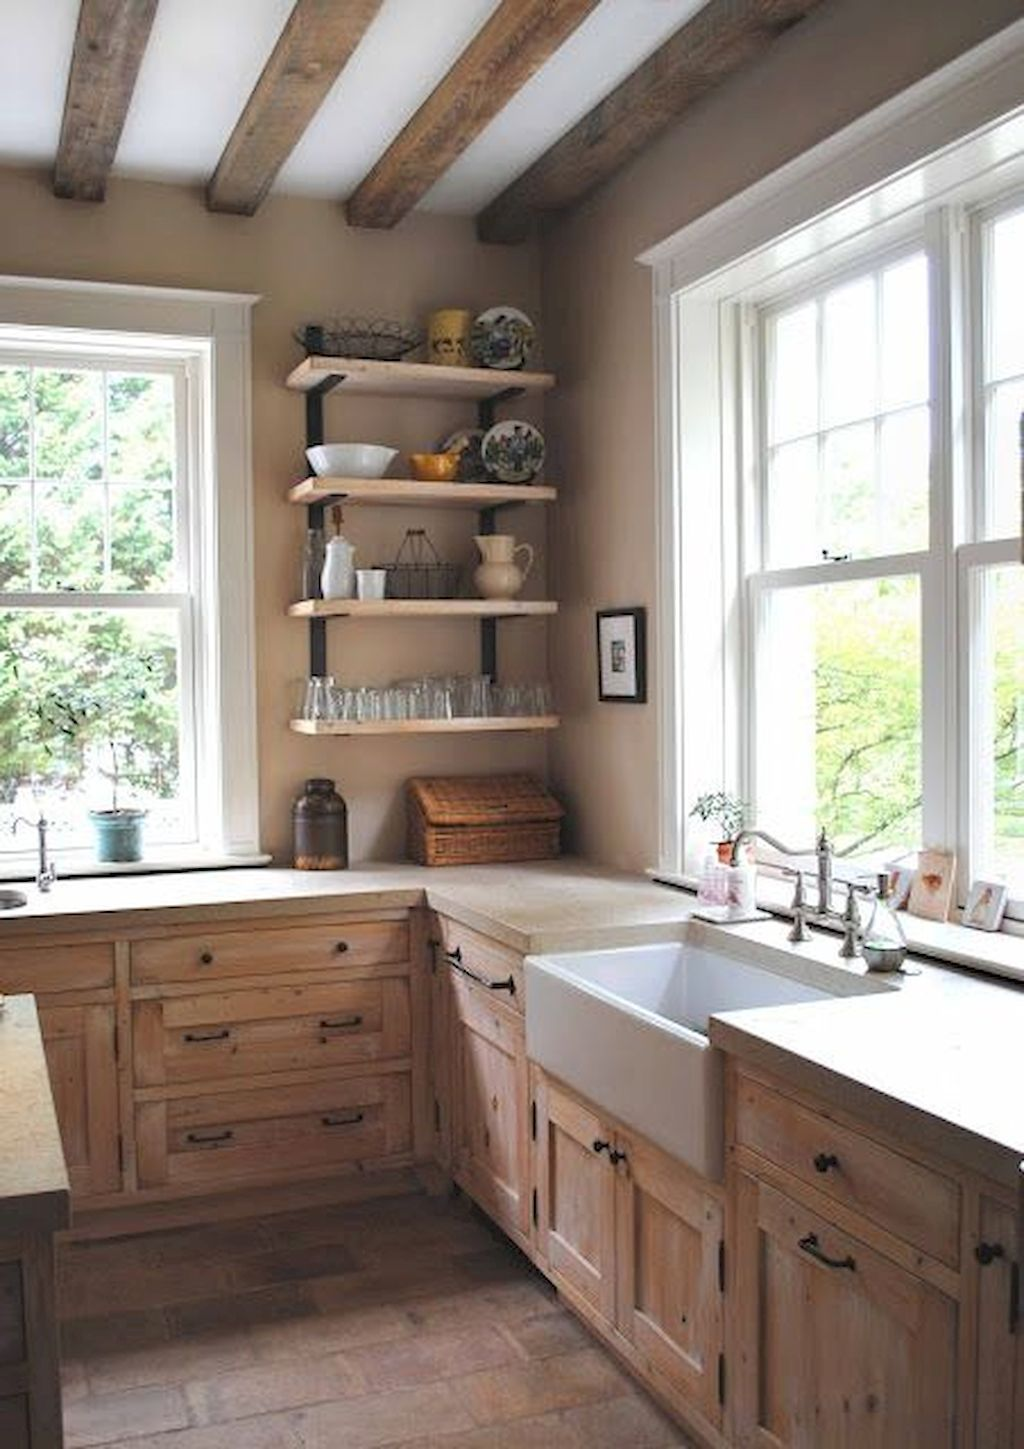 90 rustic kitchen cabinets farmhouse style ideas 8